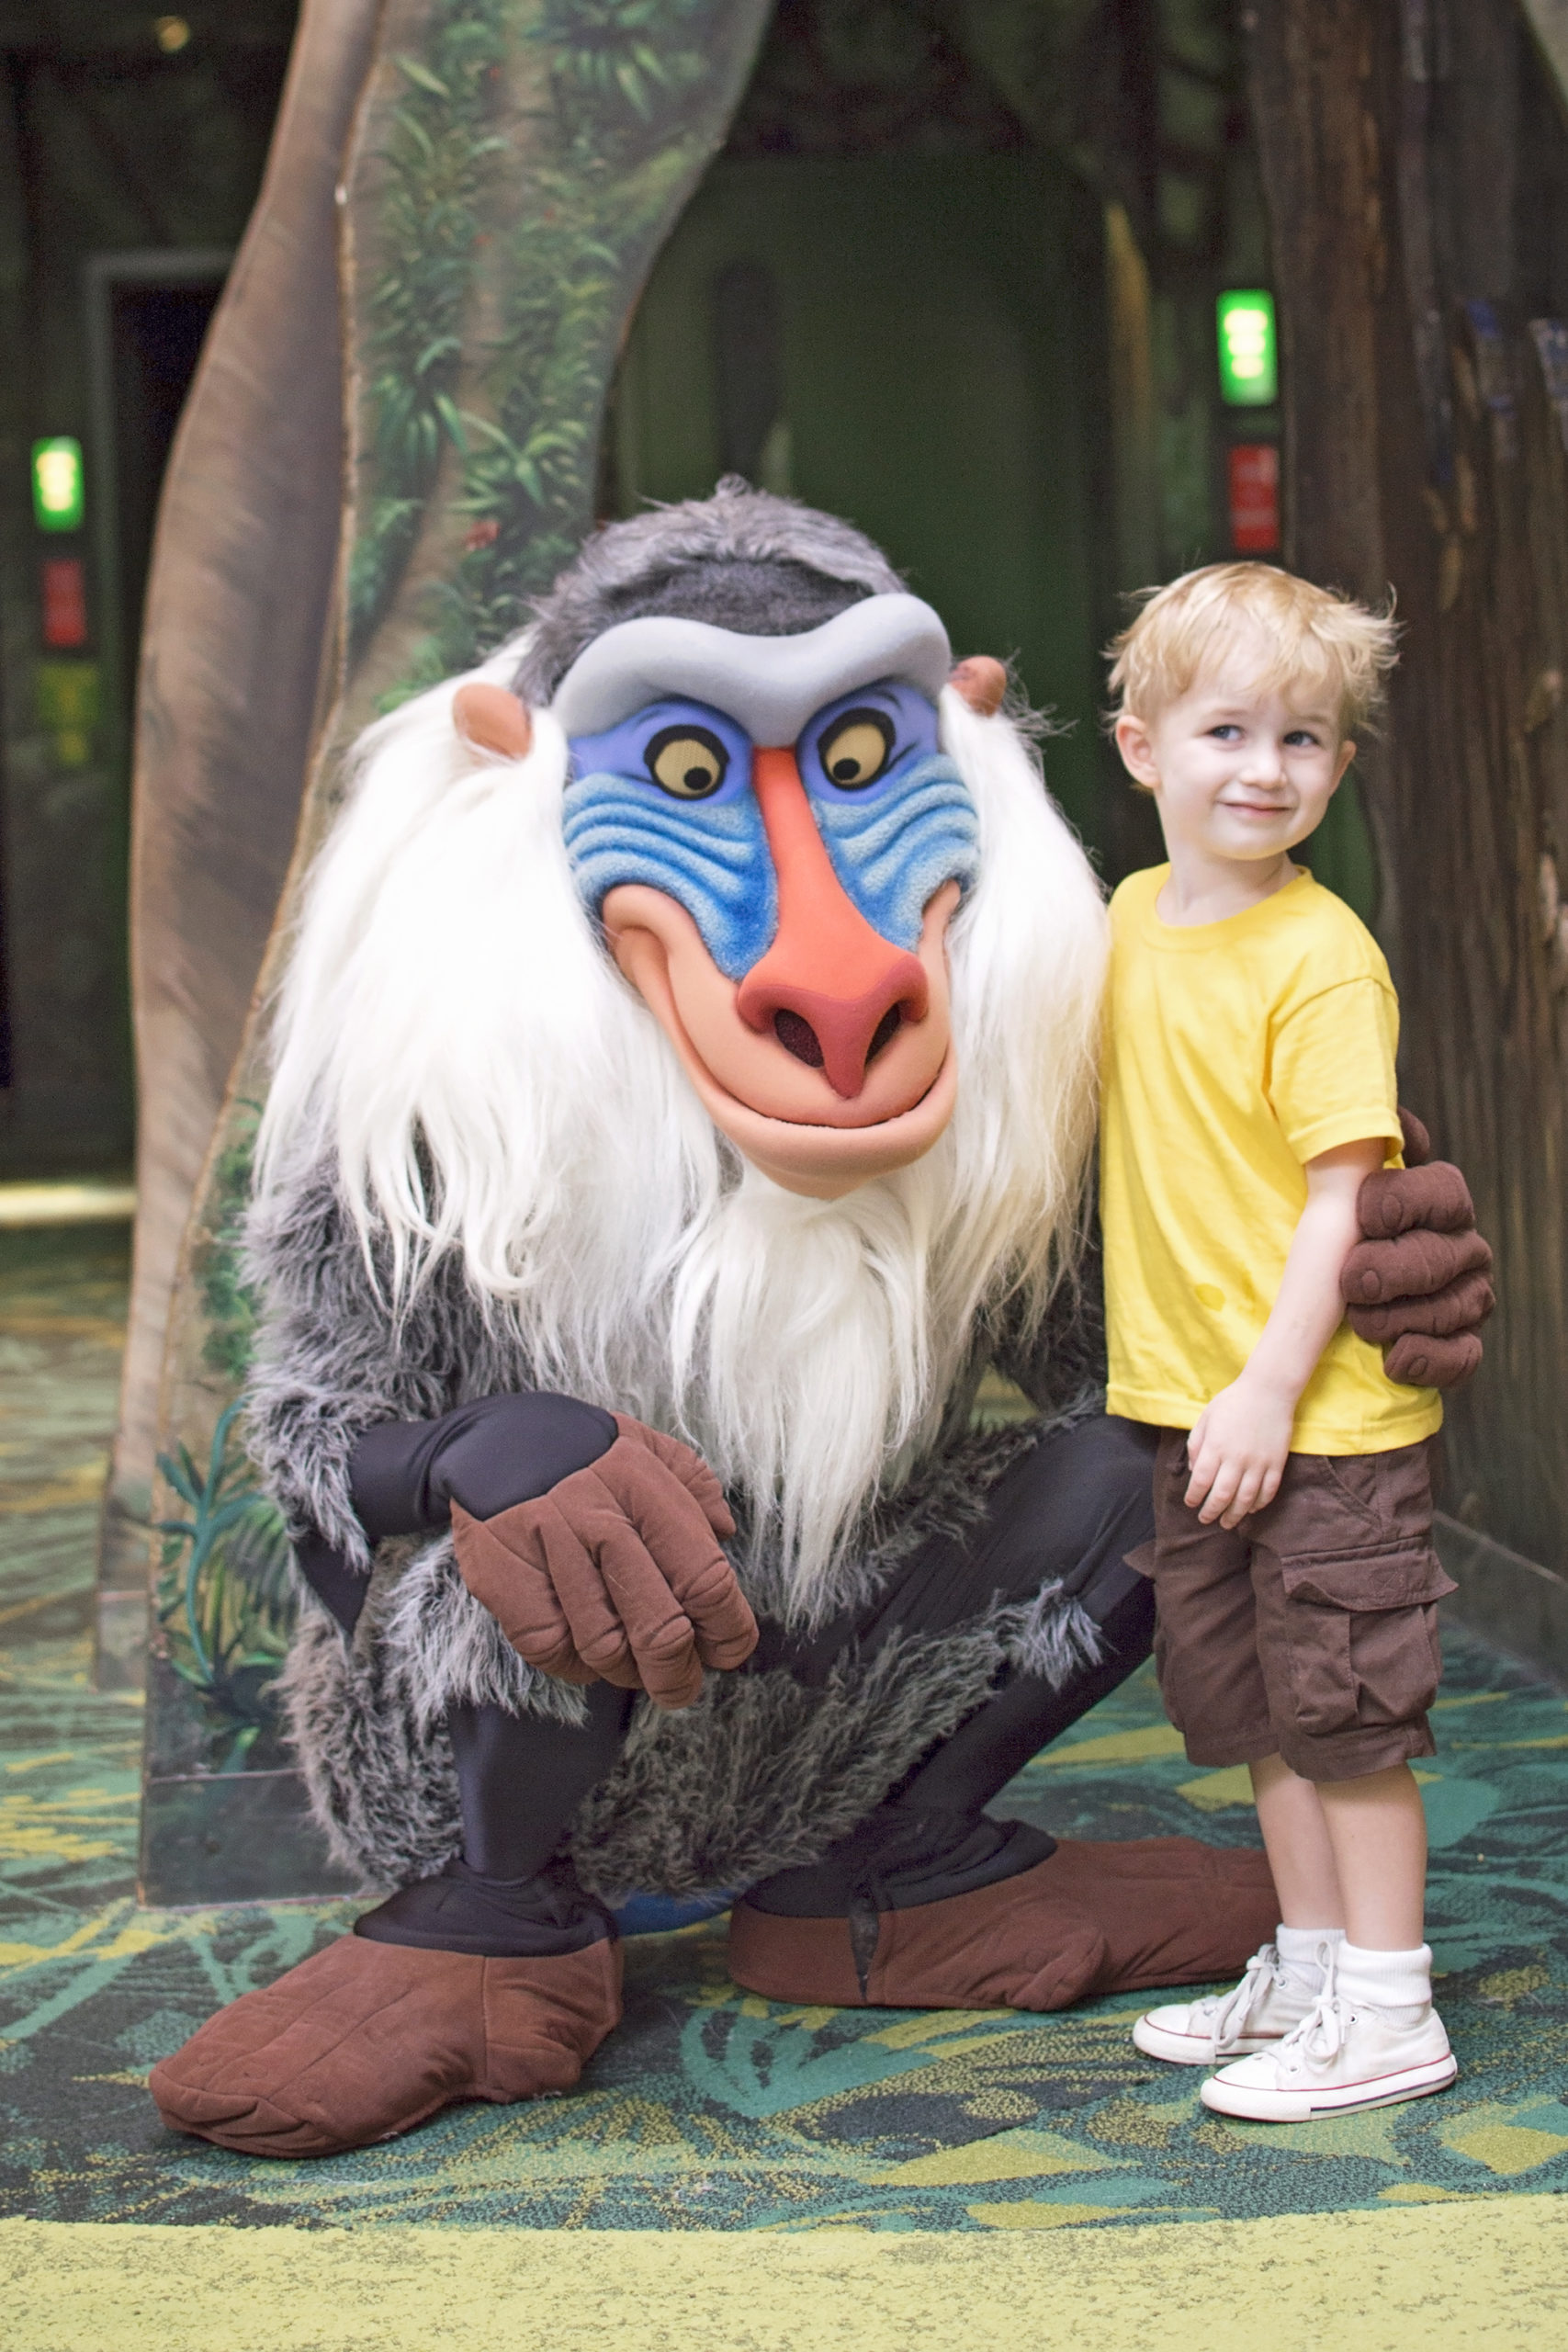 RAFIKI'S PLANET WATCH disney's animal kingdom